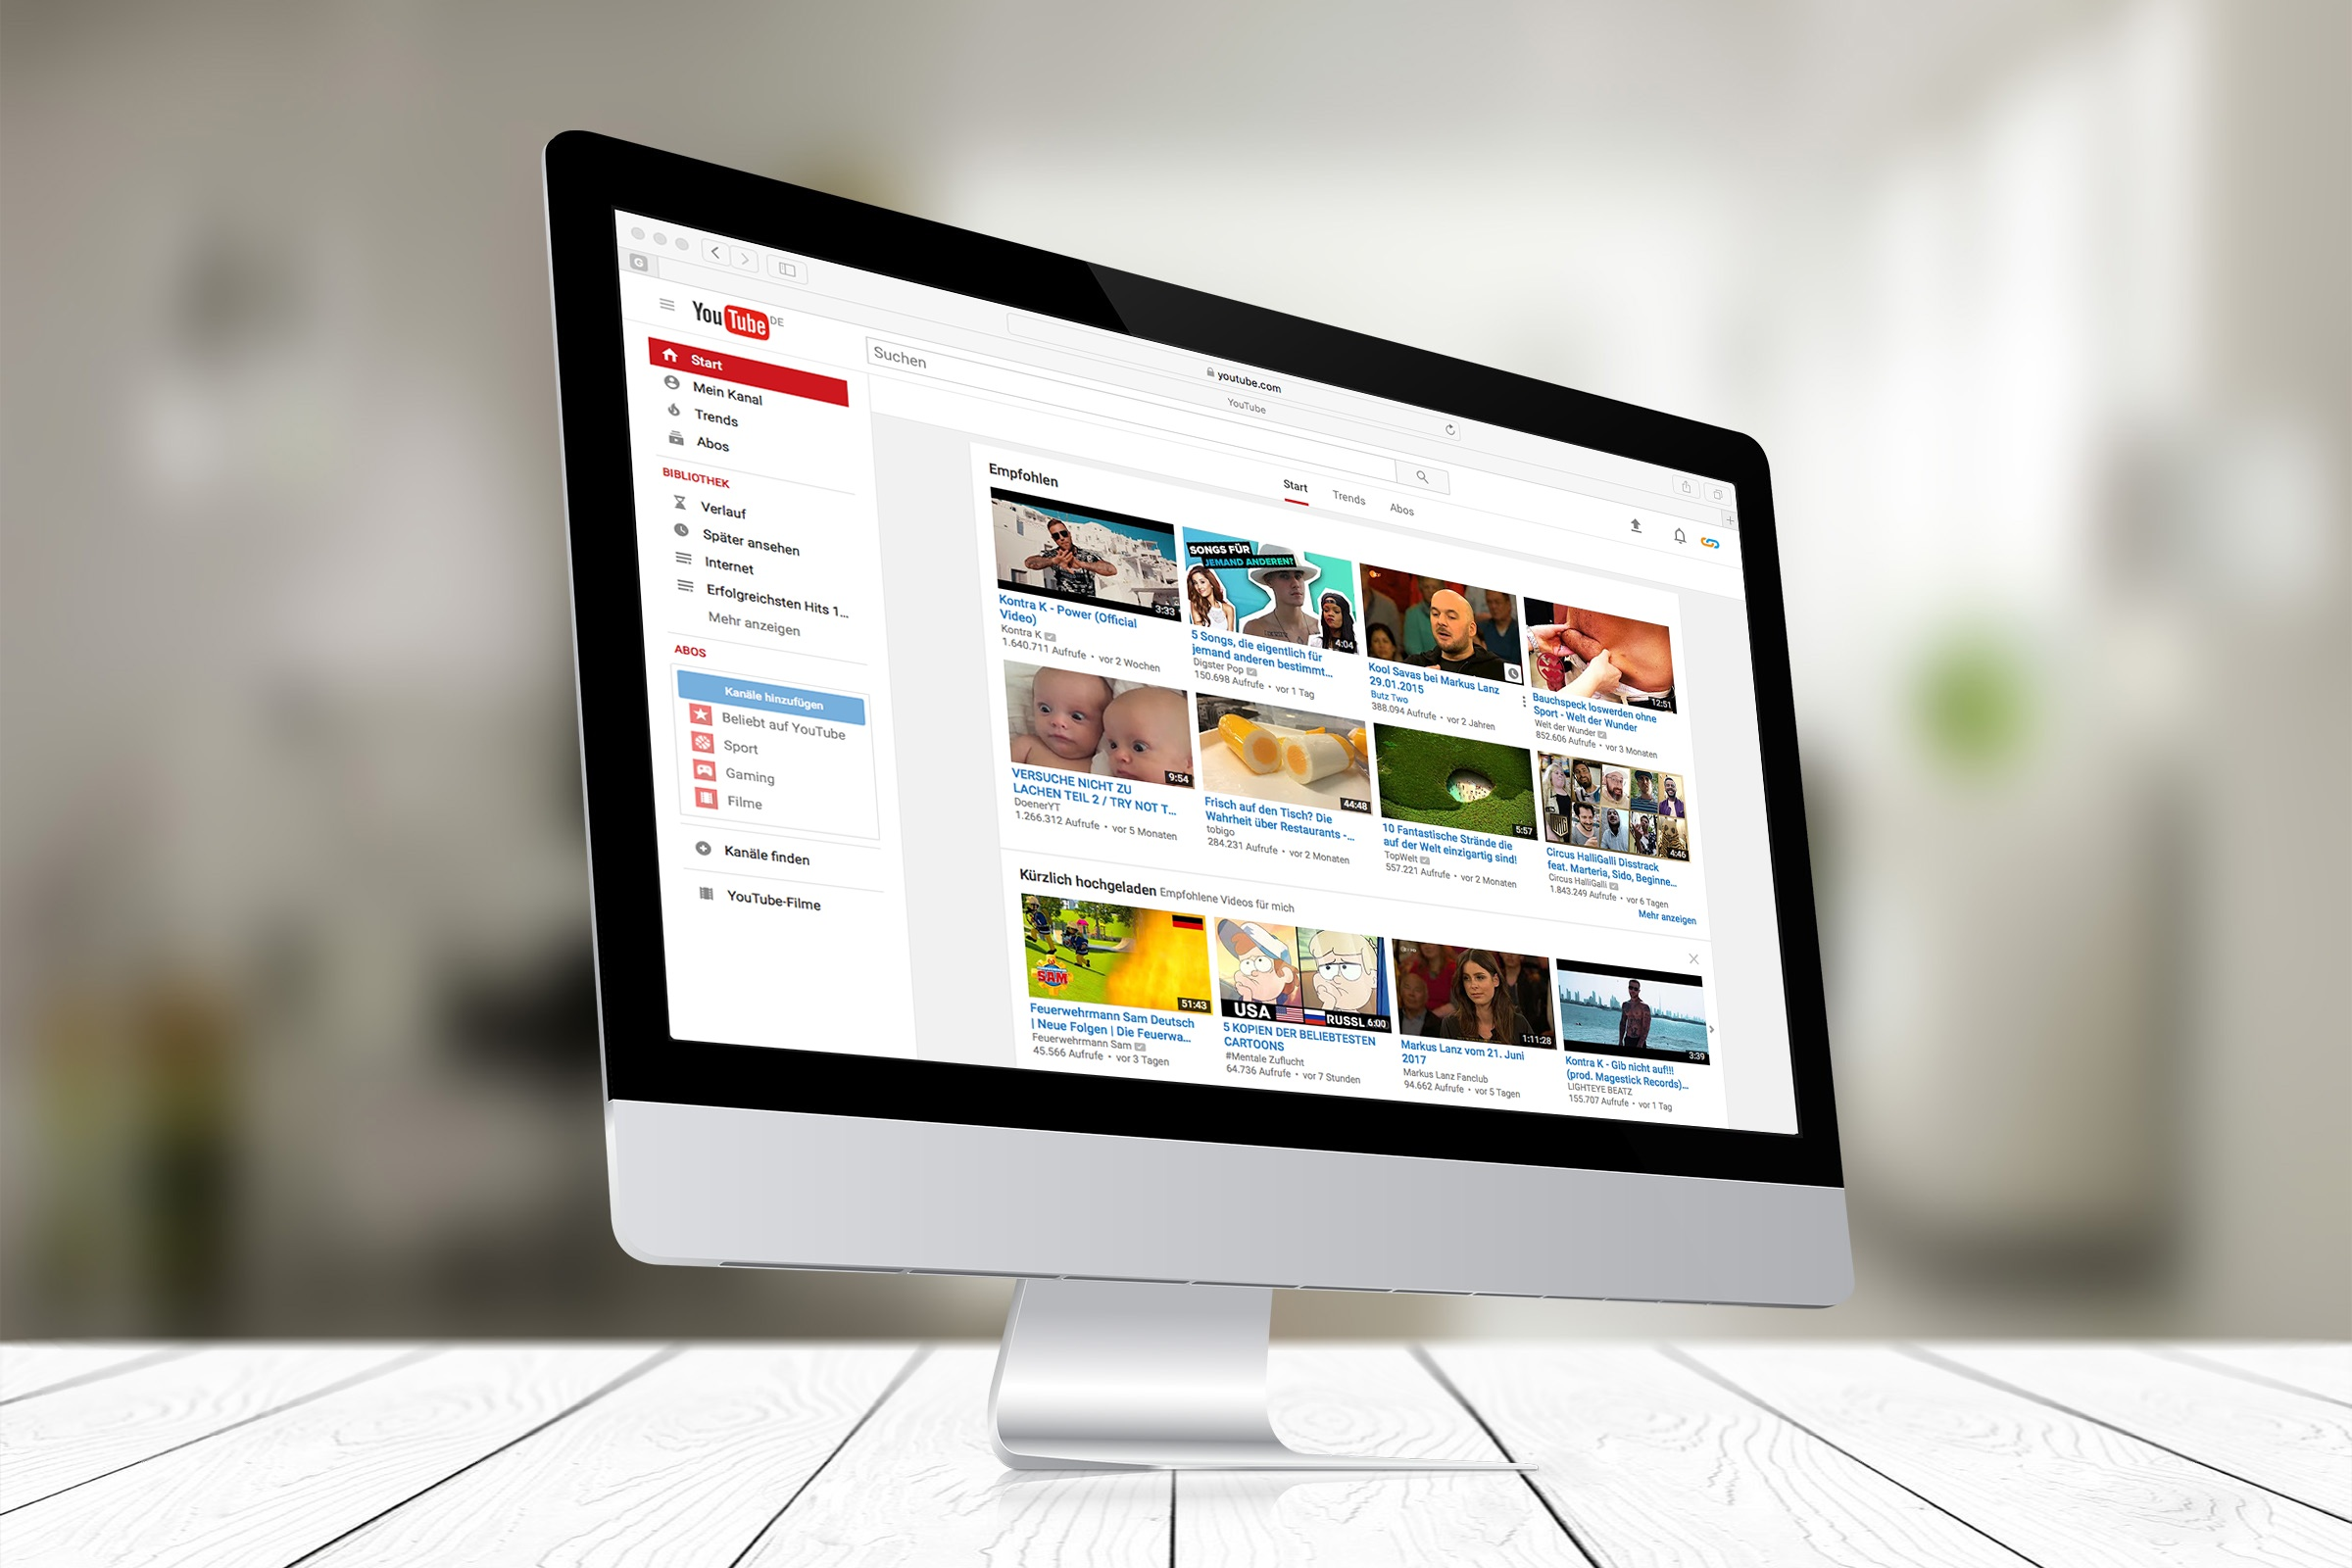 YouTube Will 'Frustrate' Some Users With Ads So They Pay for Music